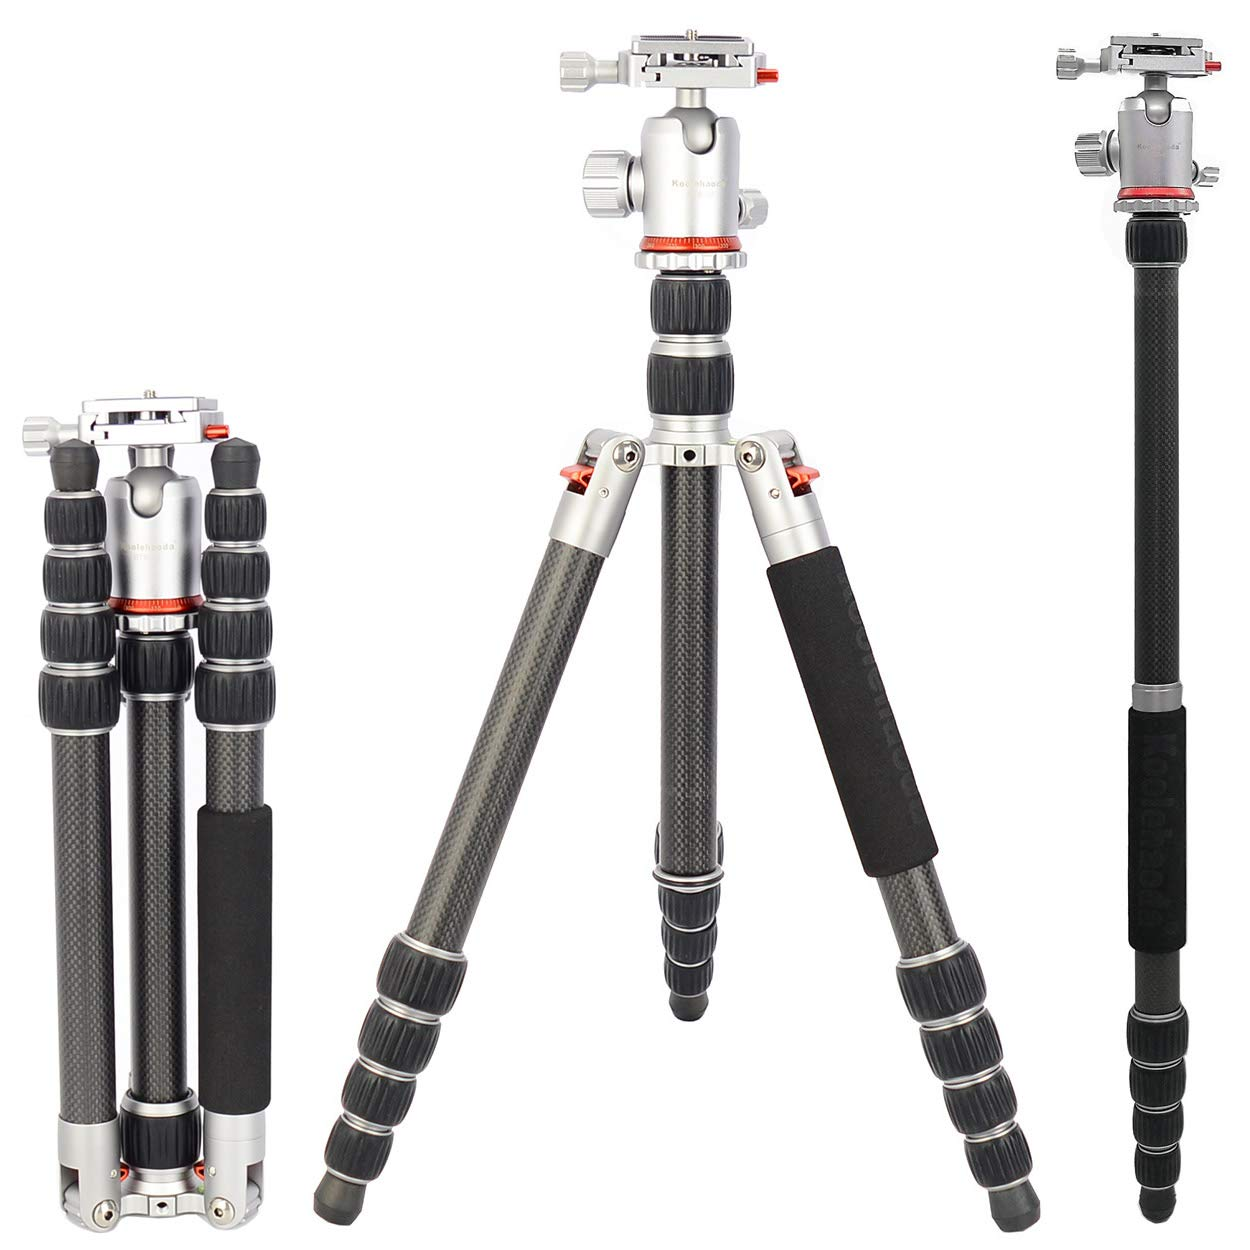 Koolehaoda Portable Lightweight Carbon Fiber 63 inches/160 Centimeters Camera Tripod Monopod with 360 Degree Ball Head for DSLR Camera,Video Camcorder, Weighing in at just 1.25kg/2.75lbs by koolehaoda